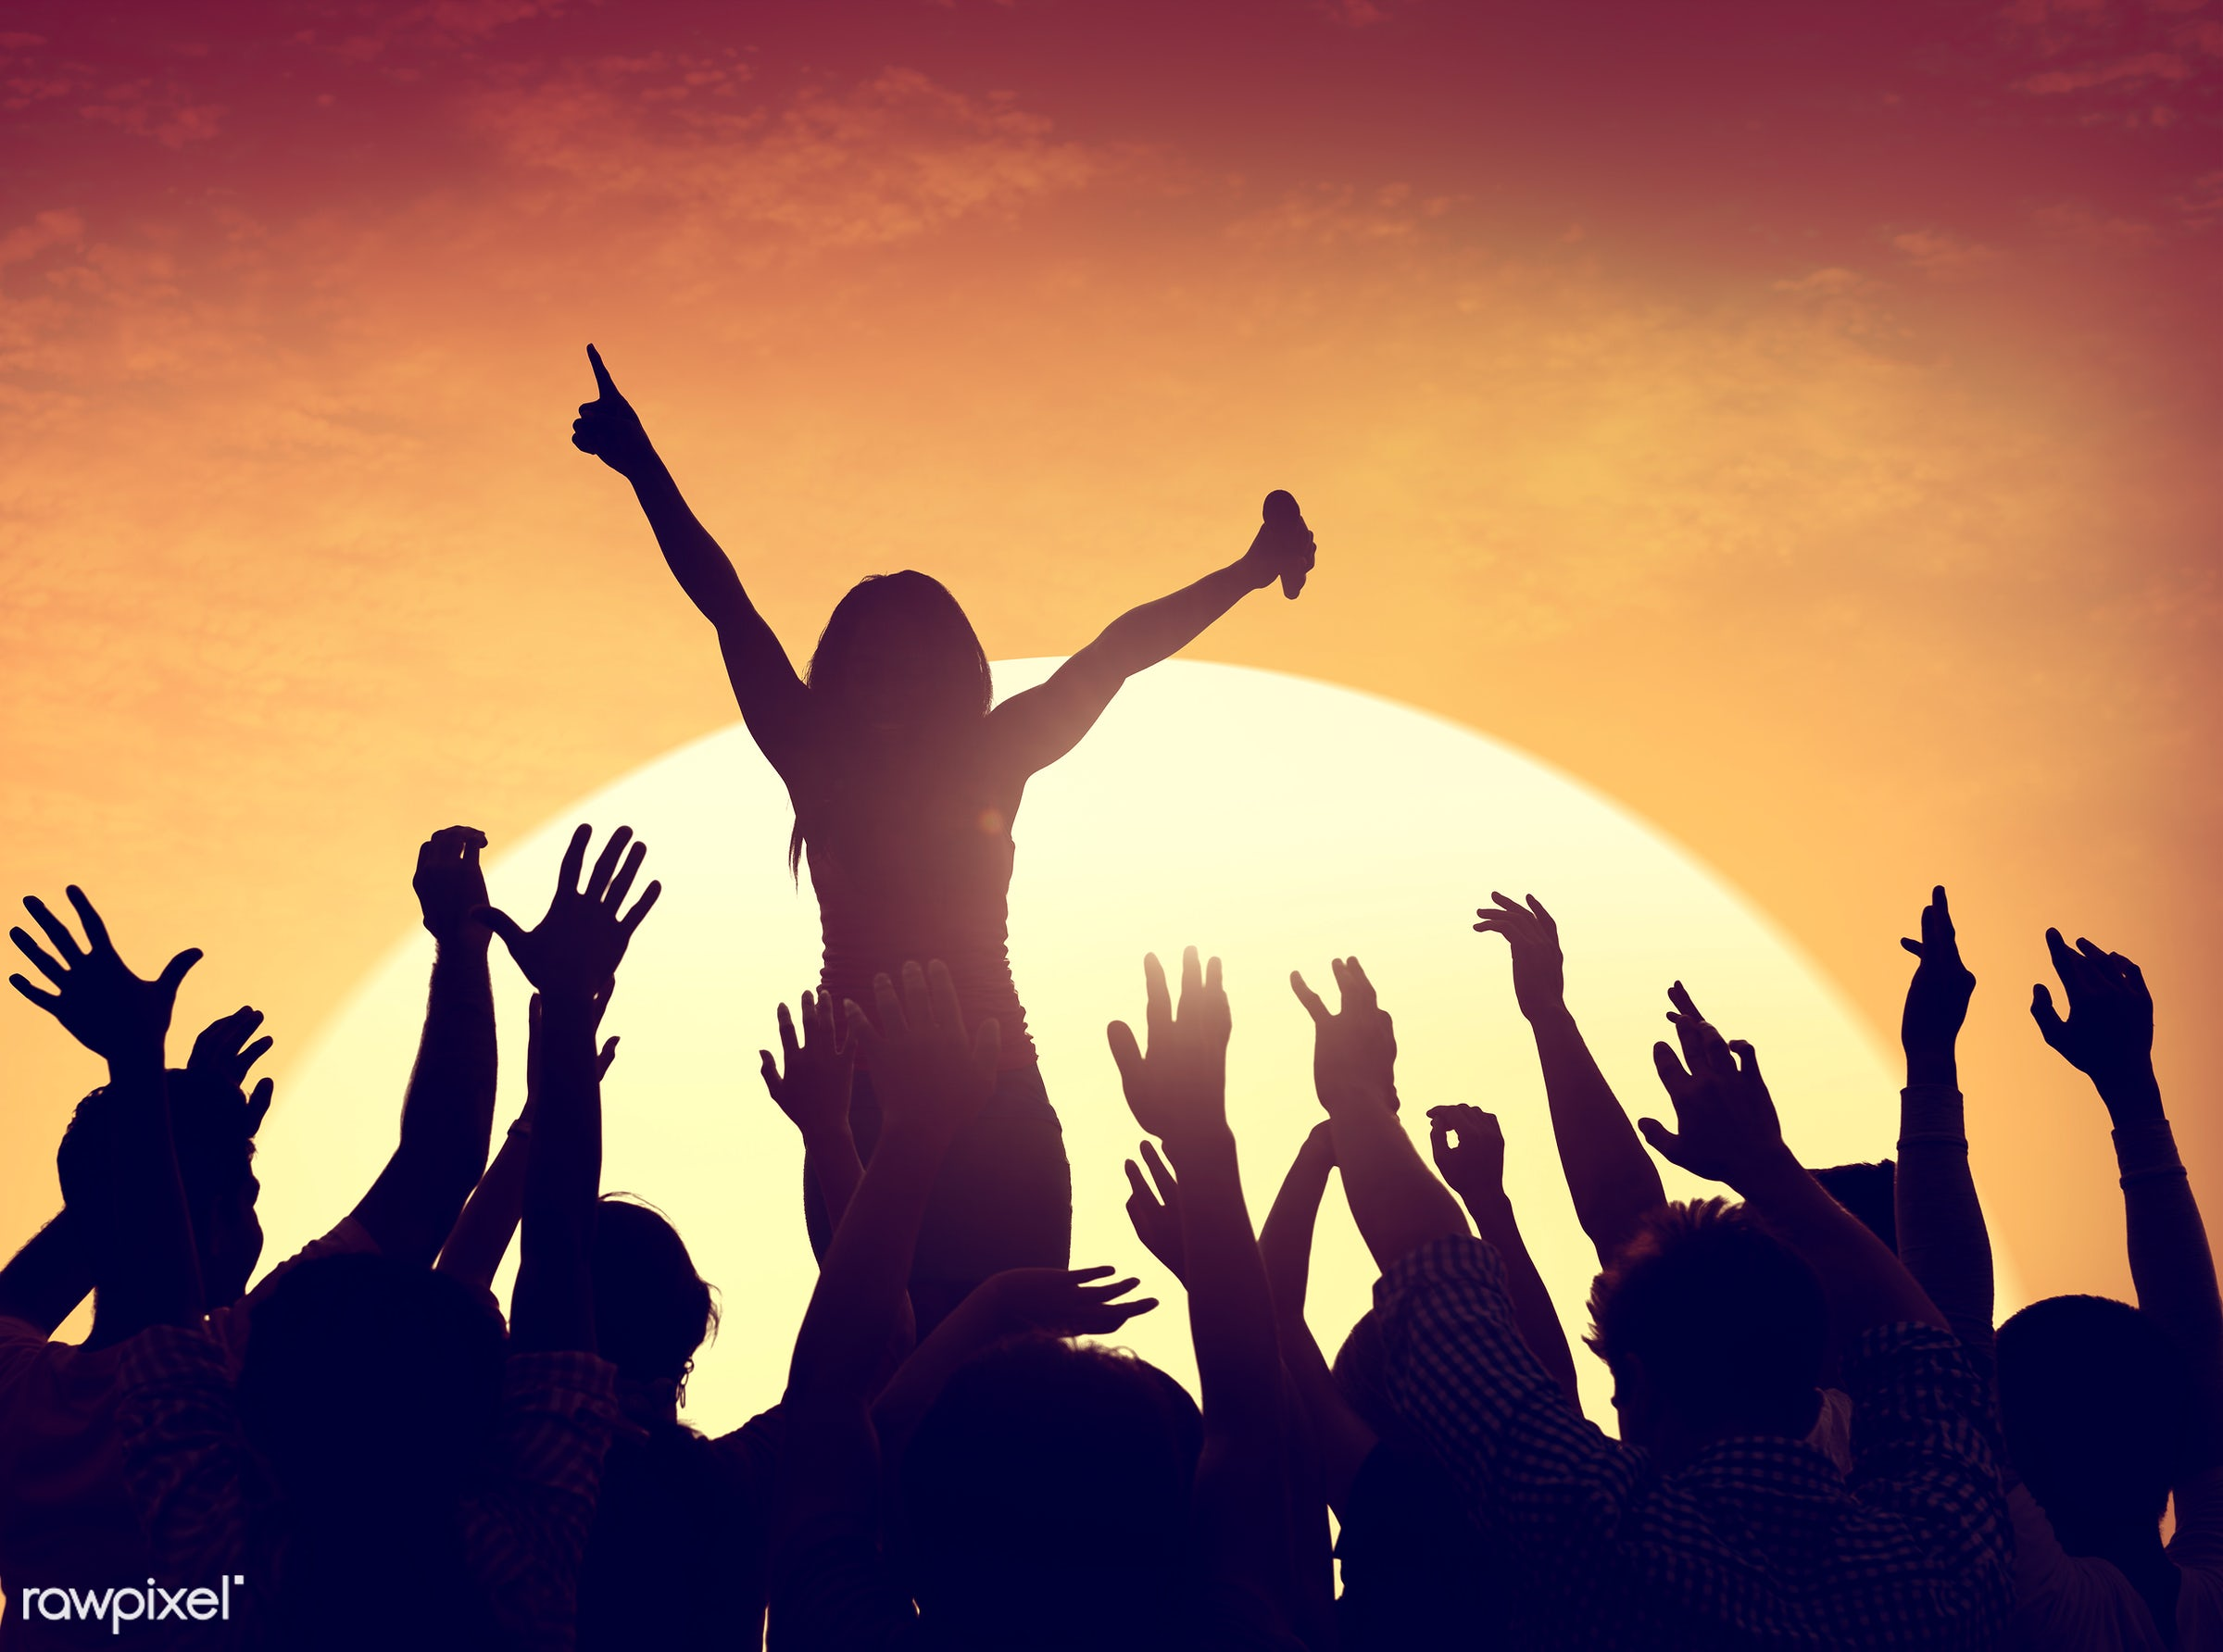 adolescence, arms raised, audience, back lit, carefree, celebration, cheerful, communication, community, concert, dancing,...